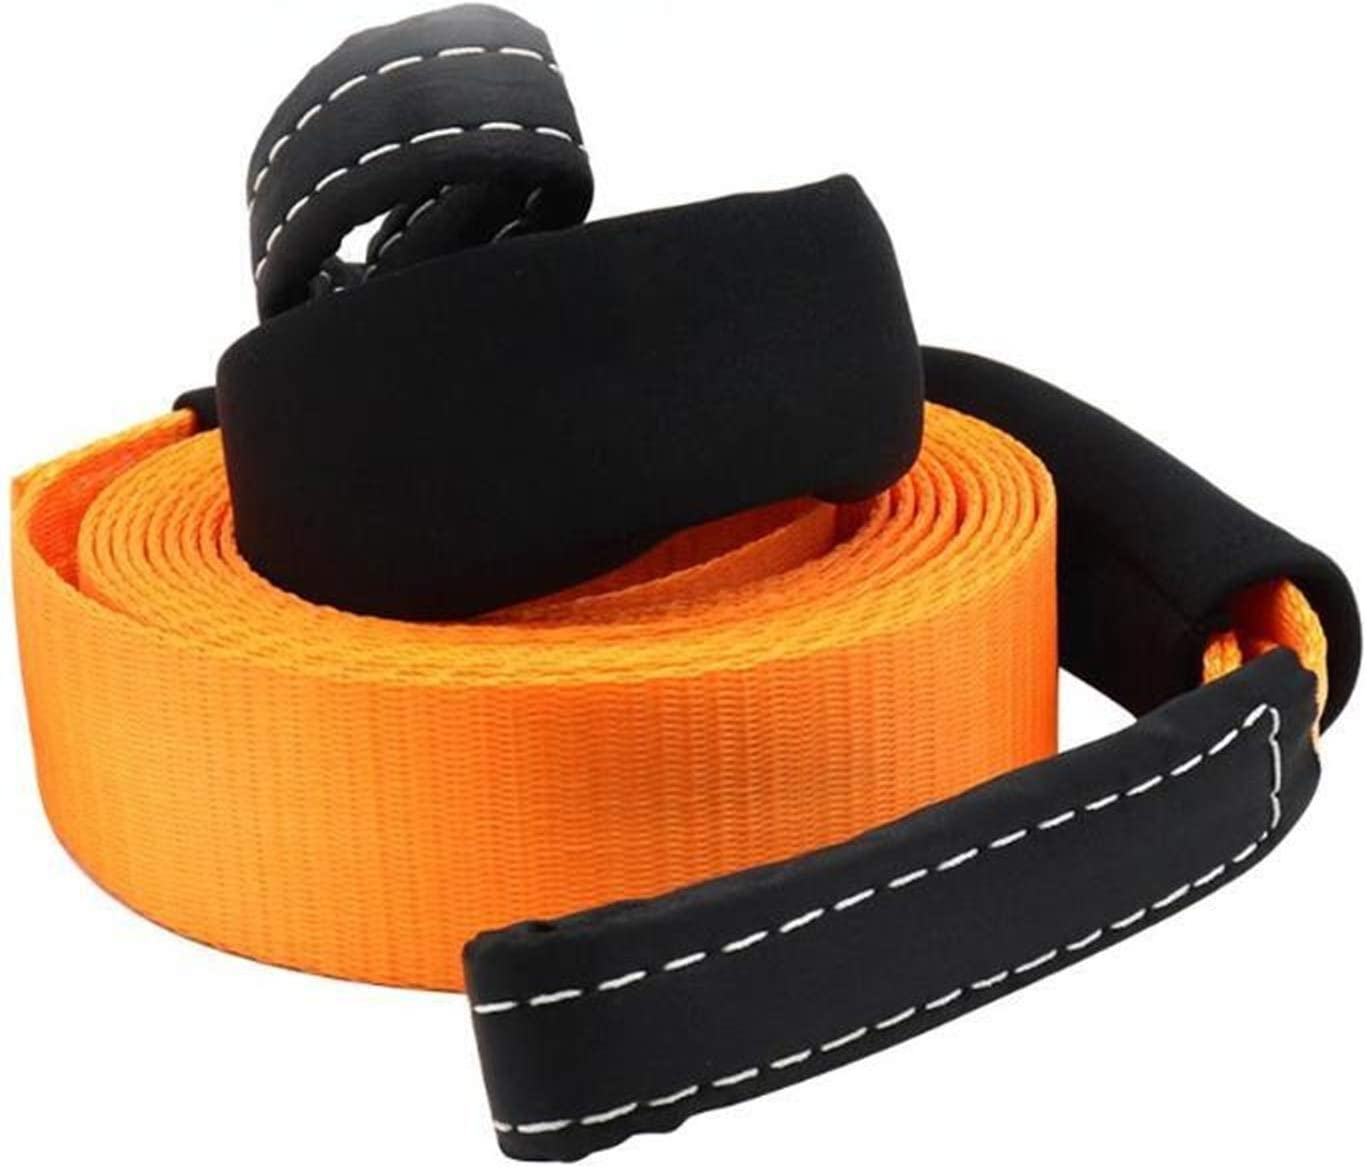 MING-BIN Max 84% OFF Winch Rope Towing Winches Excellent 5m 5Tons Heavy Duty Car Road